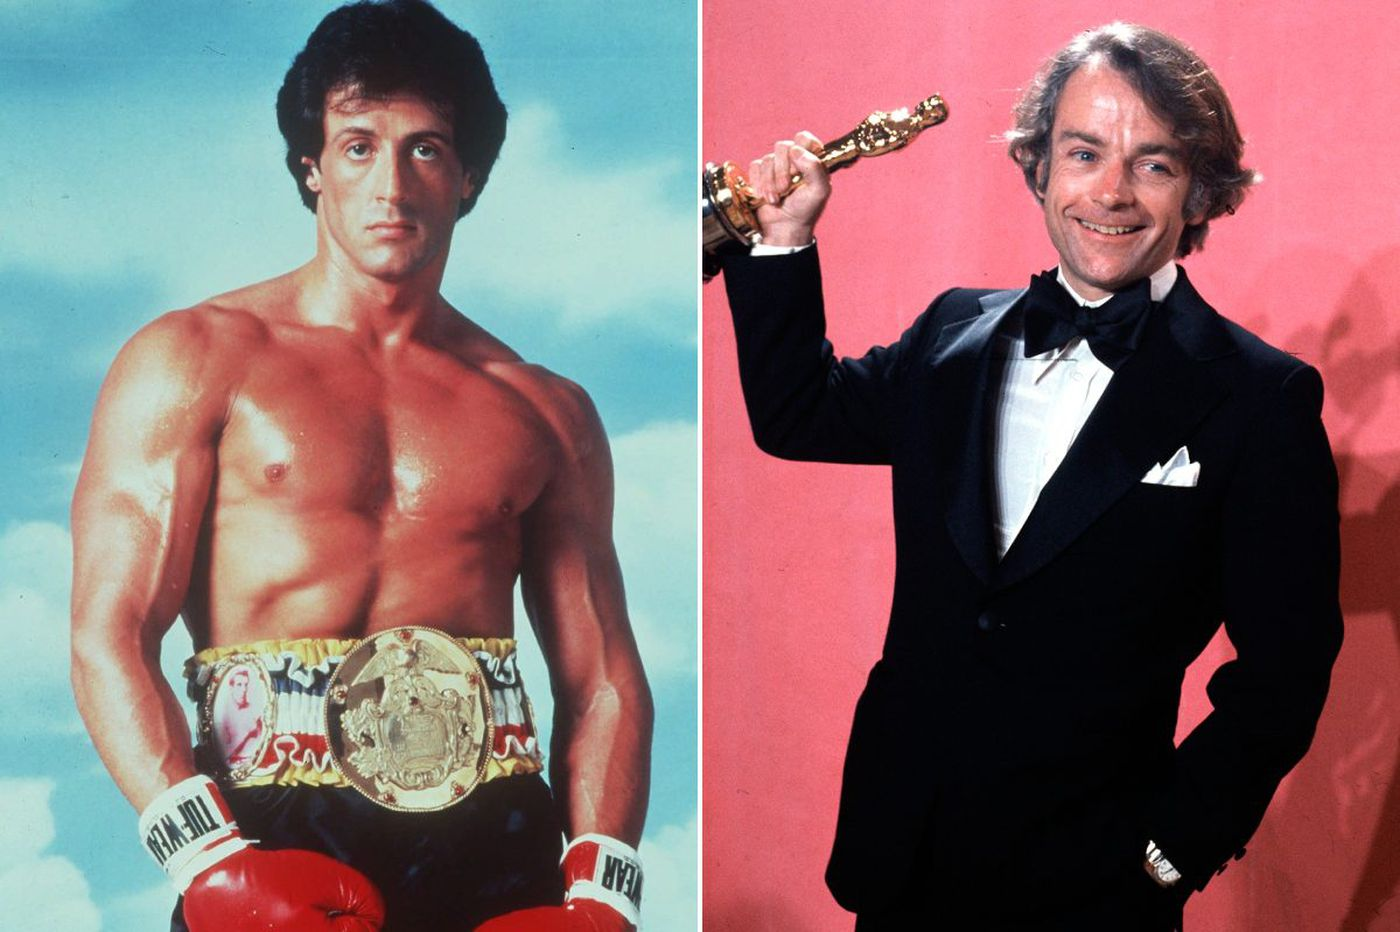 7 'Rocky' facts we learned from the doc 'John G. Avildsen: King of the Underdogs'